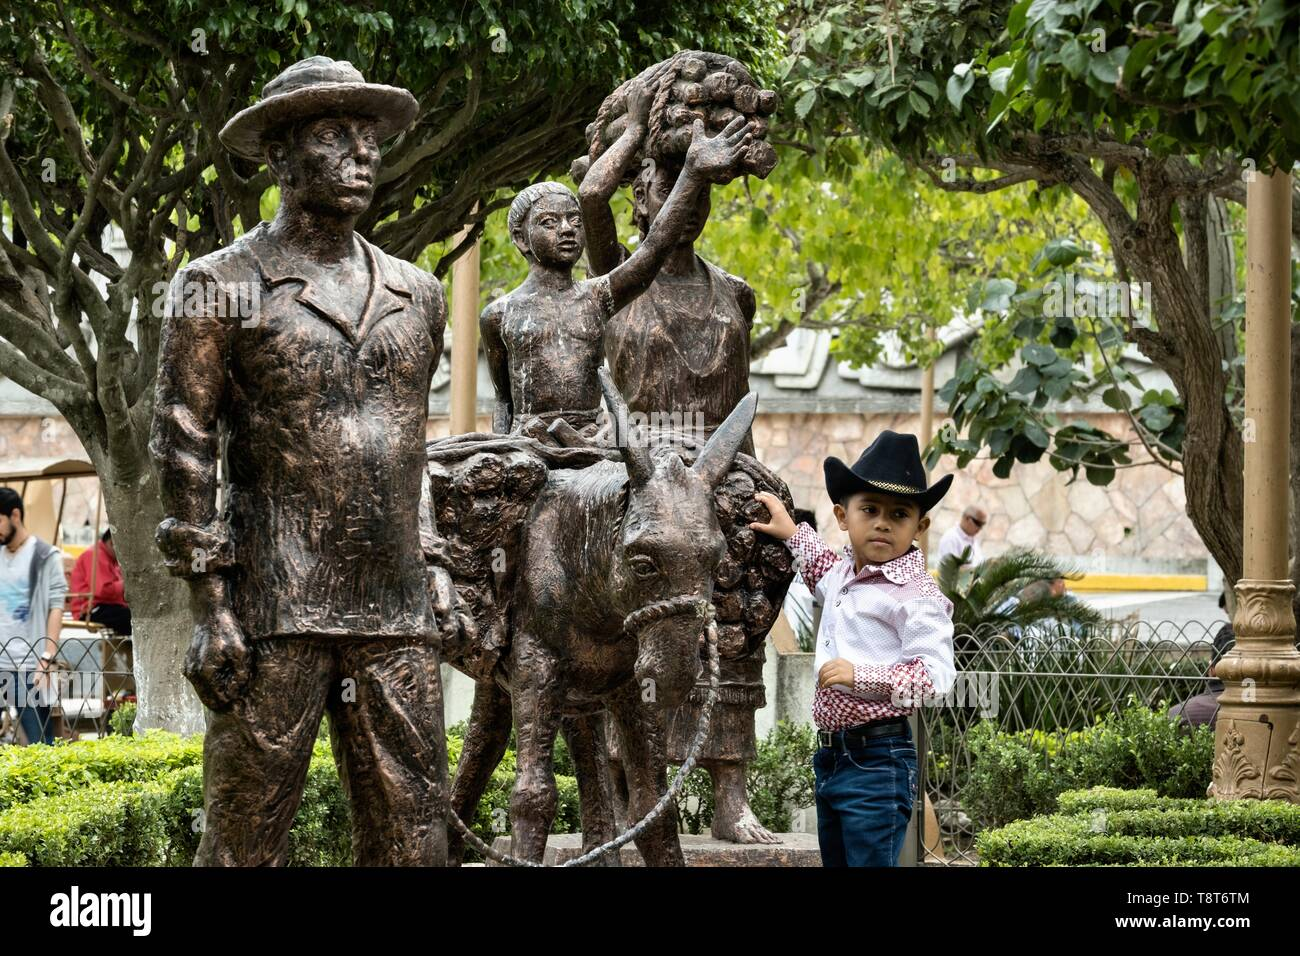 A young Mexican boy poses by a statue honoring the indigenous Totonac people in the Plaza Central Israel Tellez Park in Papantla, Veracruz, Mexico. - Stock Image